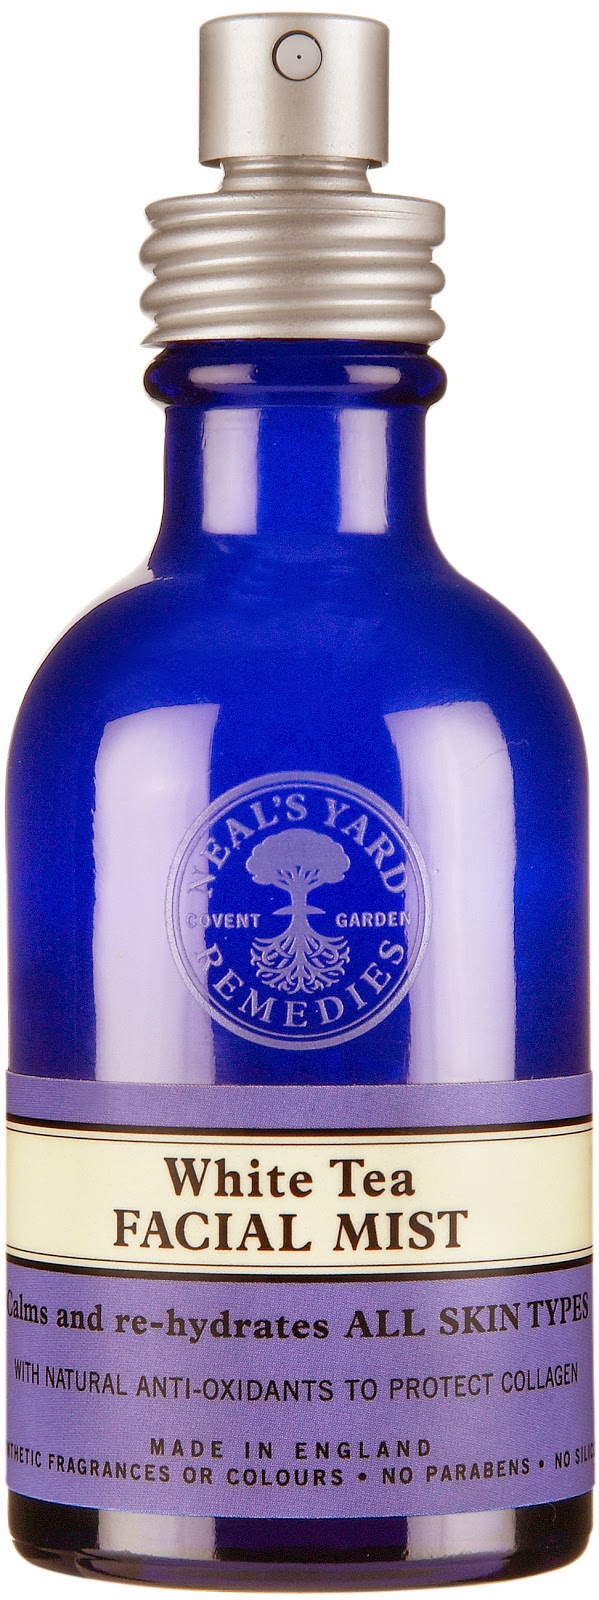 Neals-Yard-White-Tea-Facial-Mist